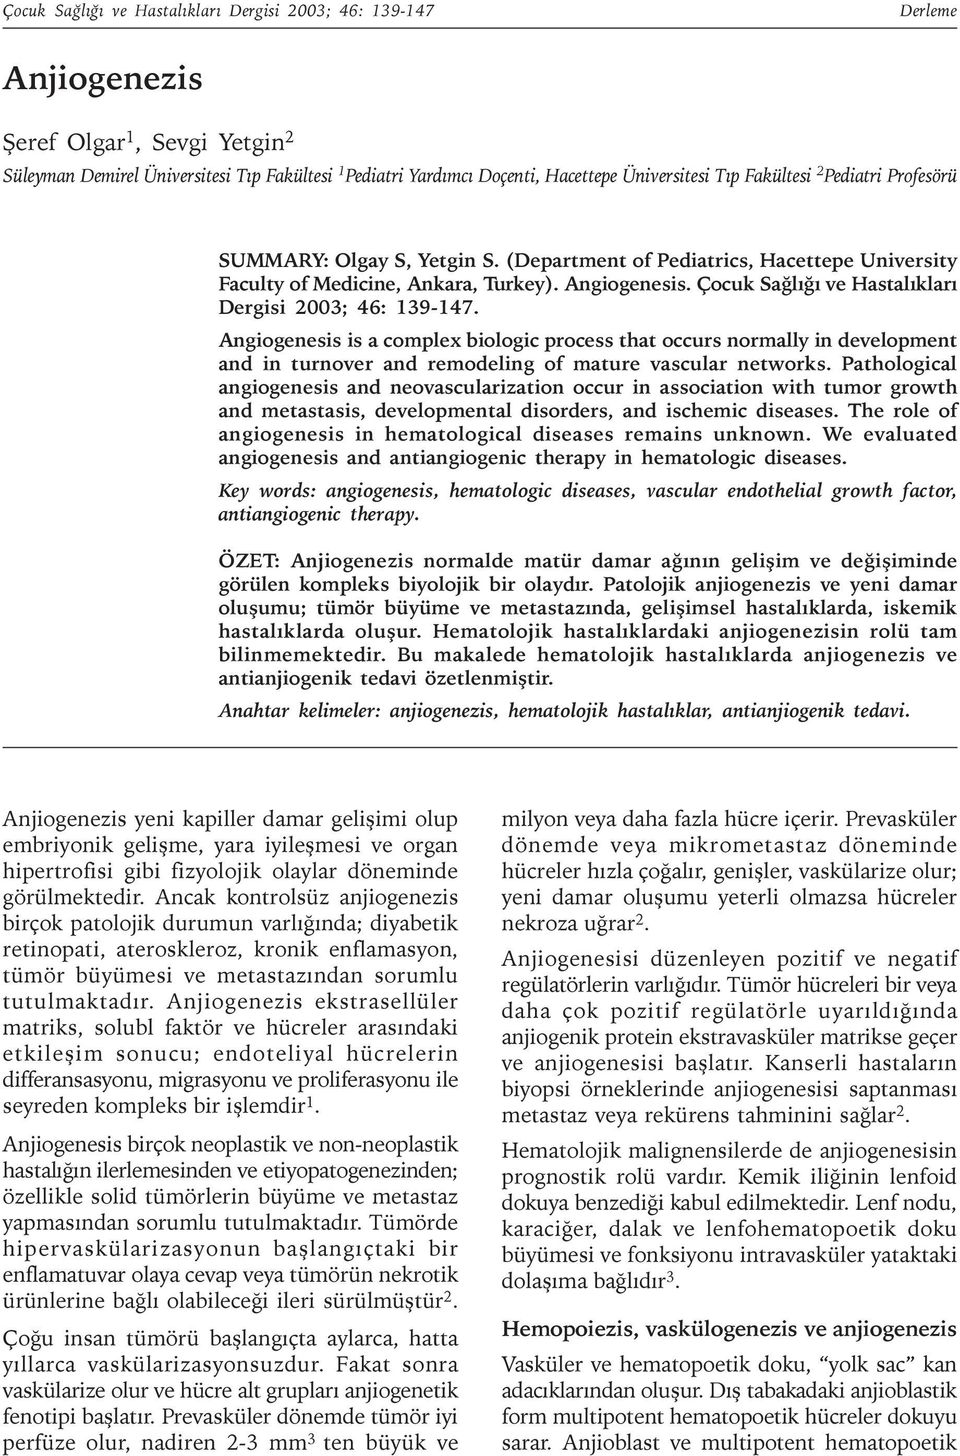 Çocuk Saðlýðý ve Hastalýklarý Dergisi 2003; 46: 139-147. Angiogenesis is a complex biologic process that occurs normally in development and in turnover and remodeling of mature vascular networks.